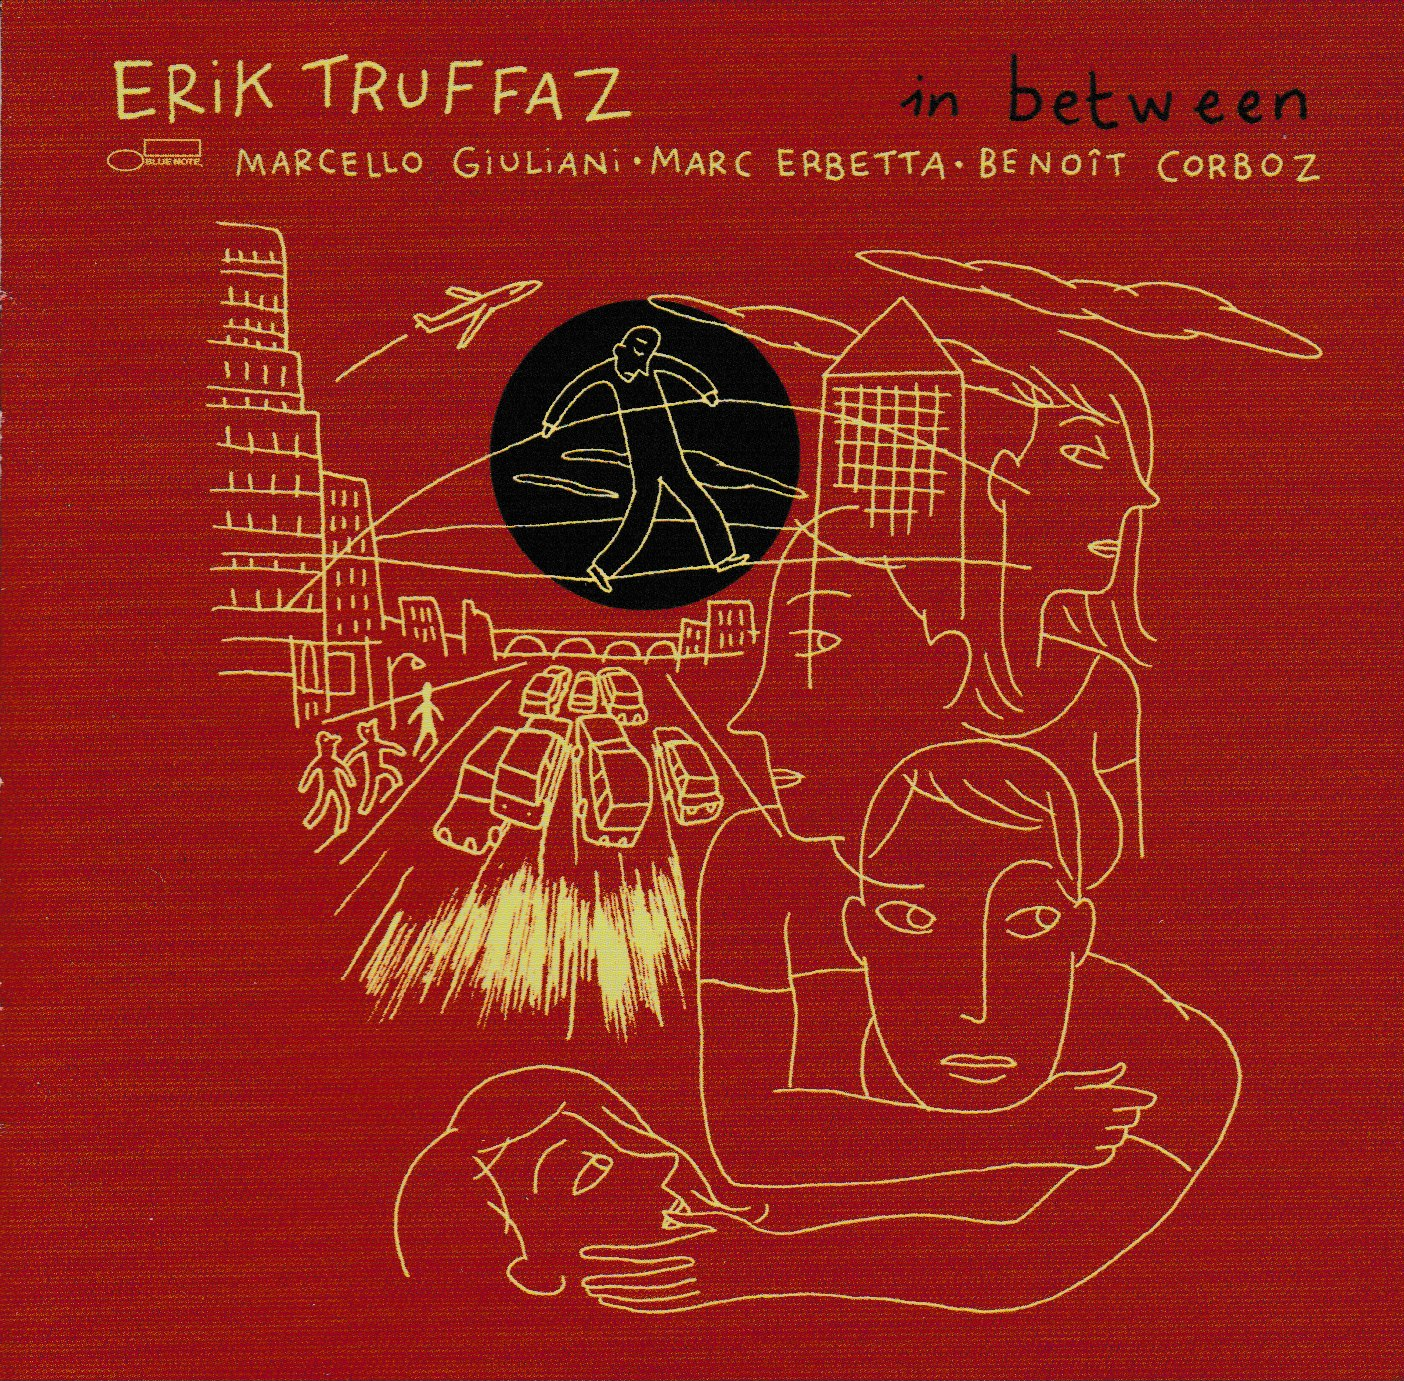 TRUFFAZ ERIC – In Between